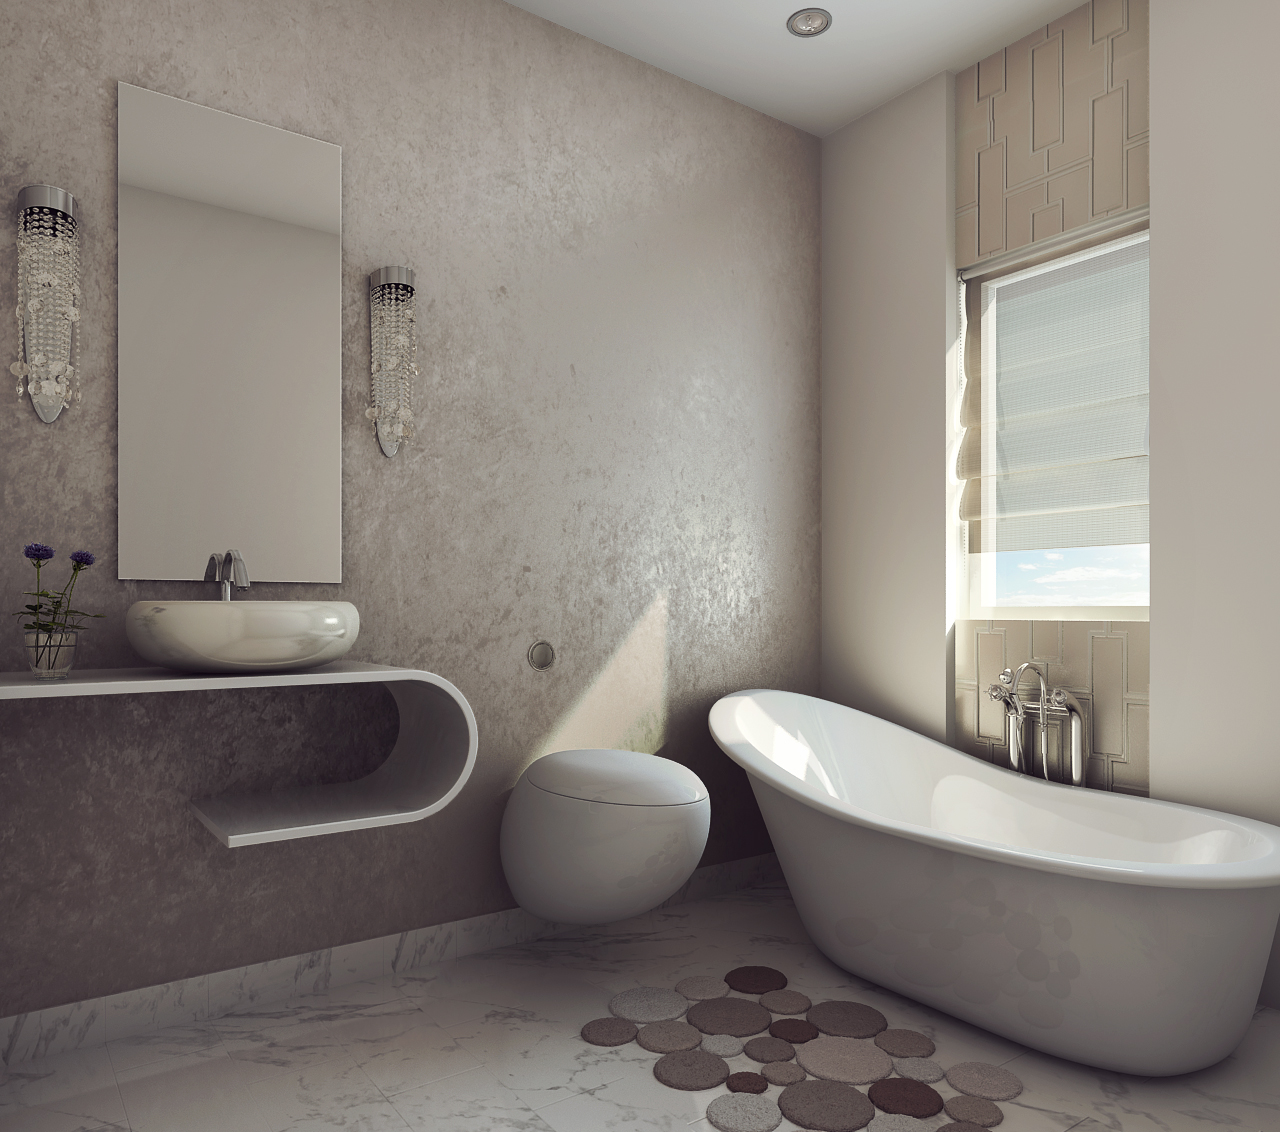 Modern earthy design bath room free 3d model max for New model bathroom design